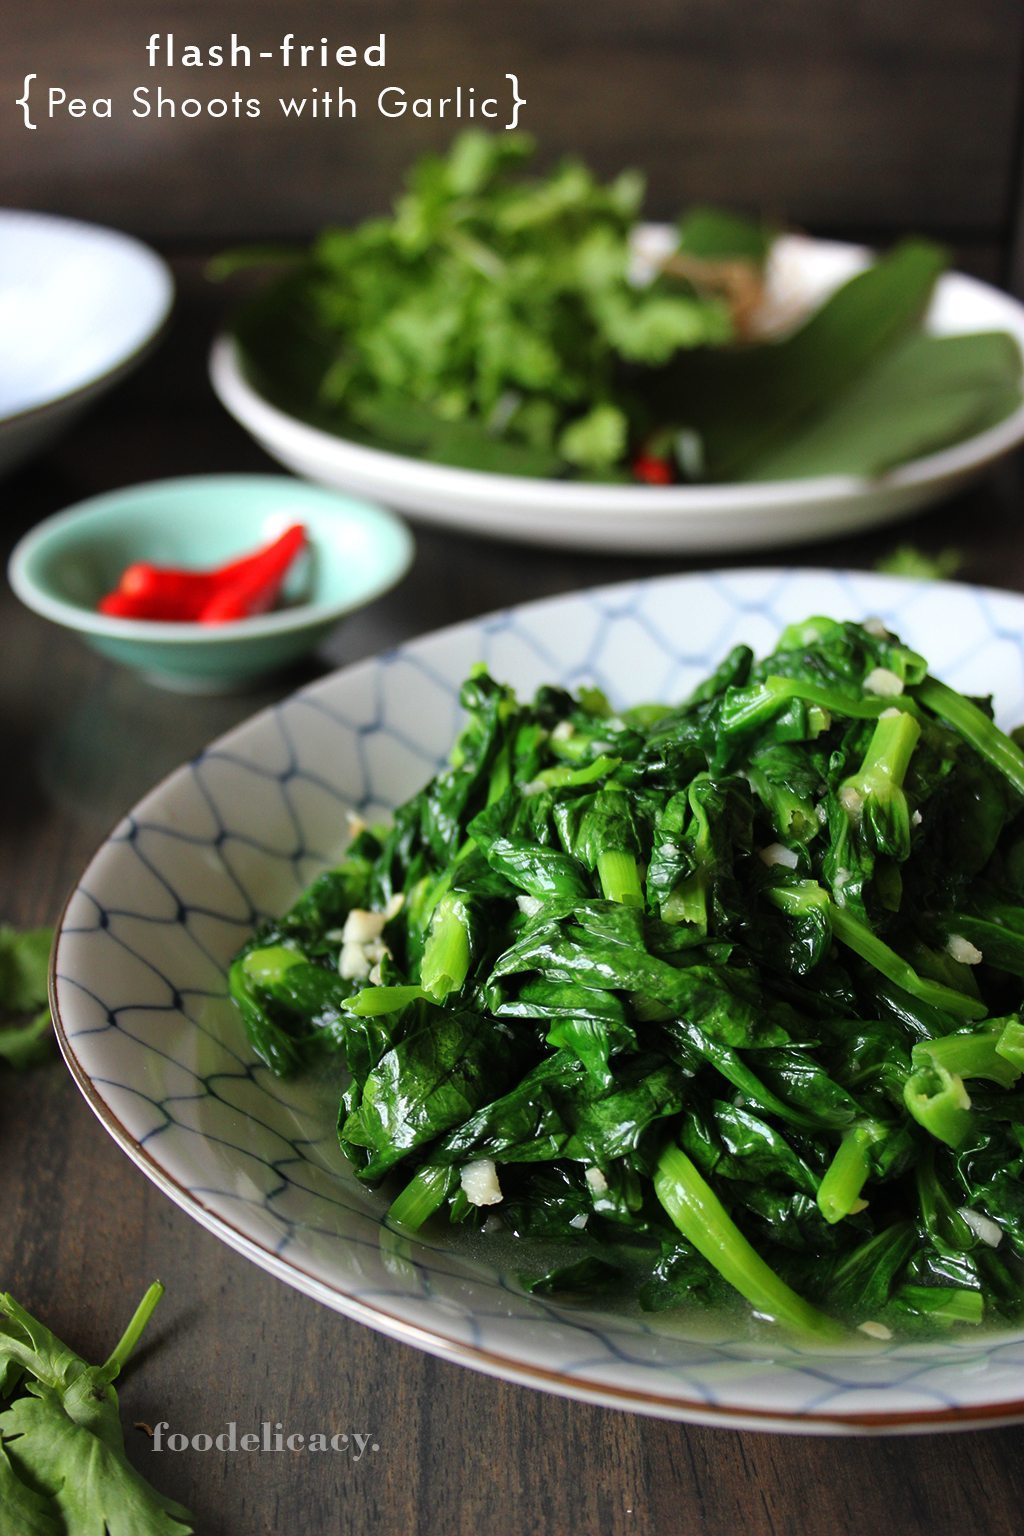 Flash_Fried_Pea_Shoots_Title_1A